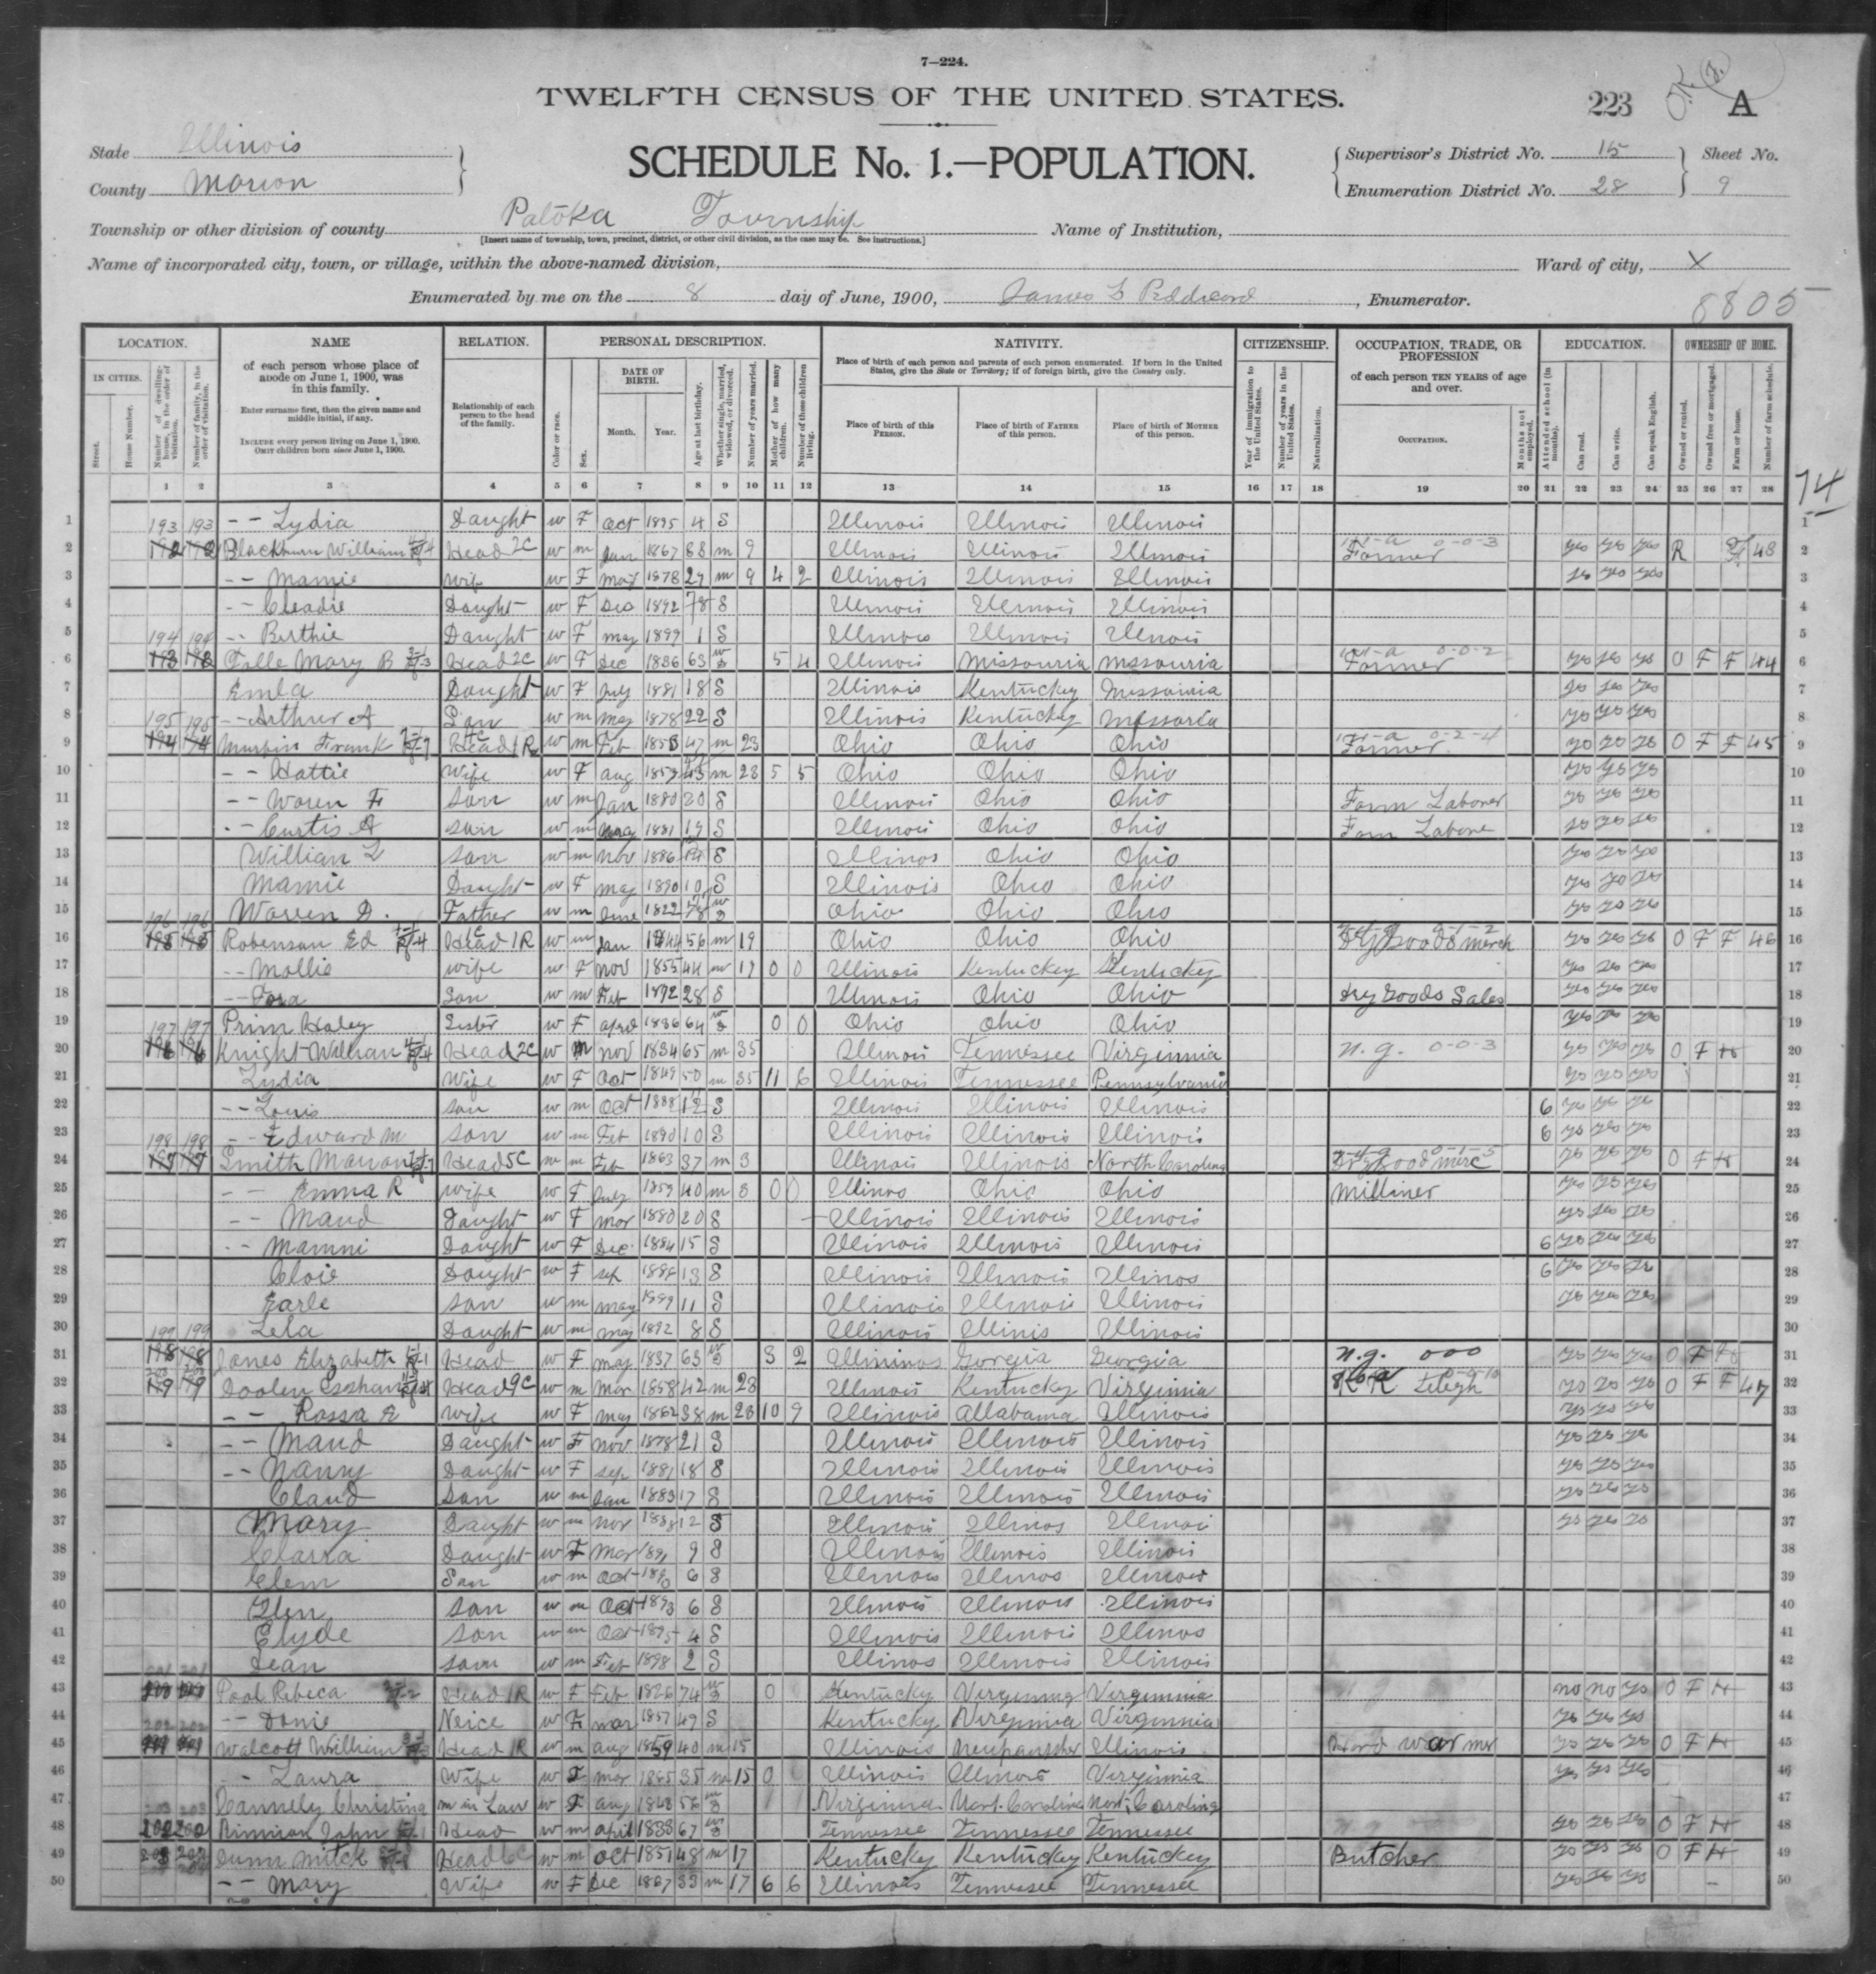 Illinois: MARION County, Enumeration District 28, Sheet No. 9A